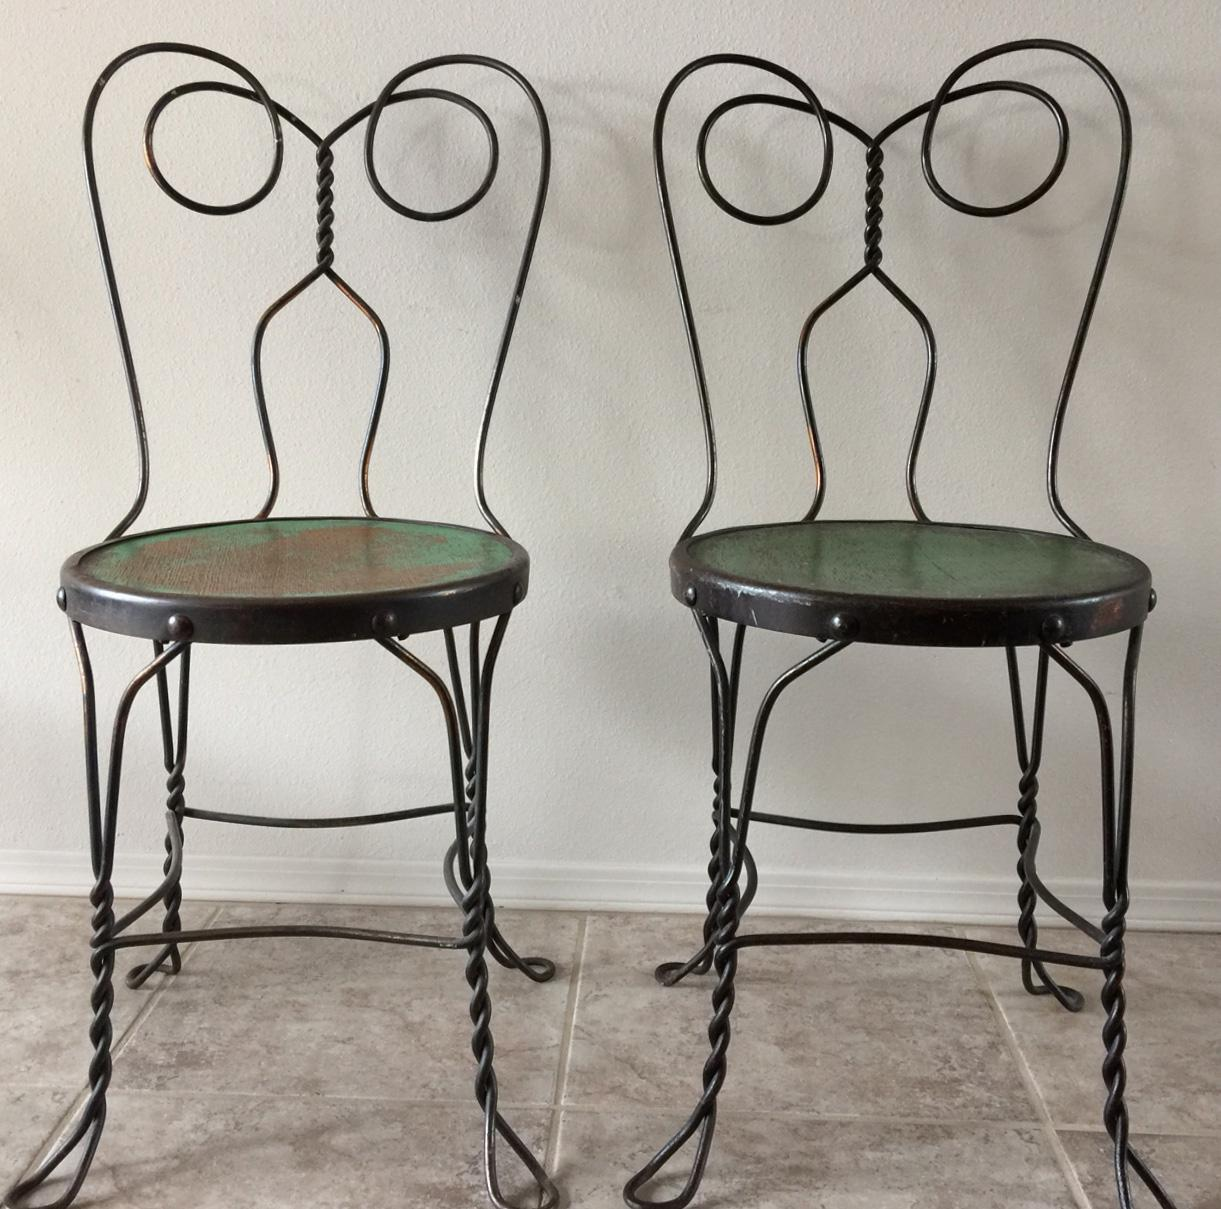 Genial This Delightful, Art Deco, Vintage Set Of Bistro Or Ice Cream Parlor Chairs  Came